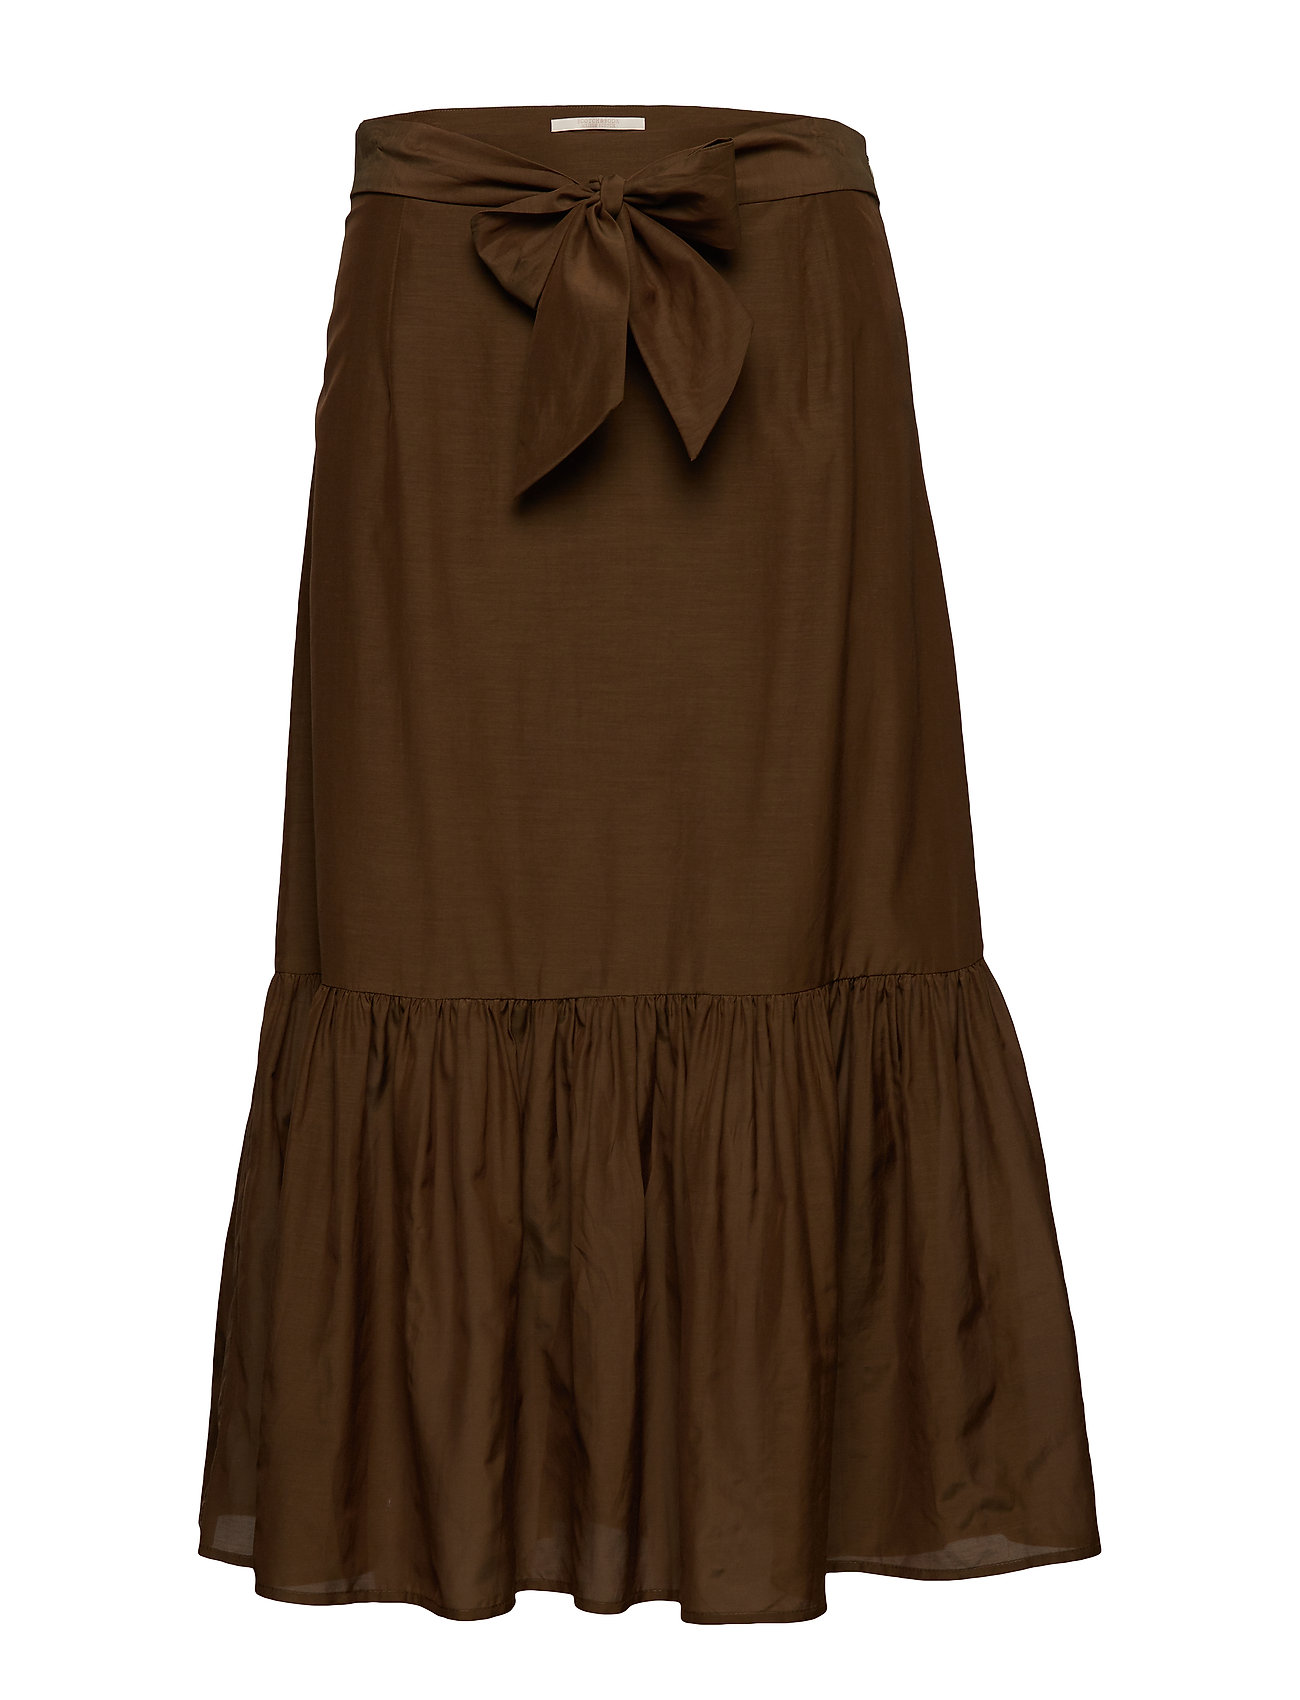 Scotch & Soda Belted midi length skirt in sheer viscose quality - MILITARY